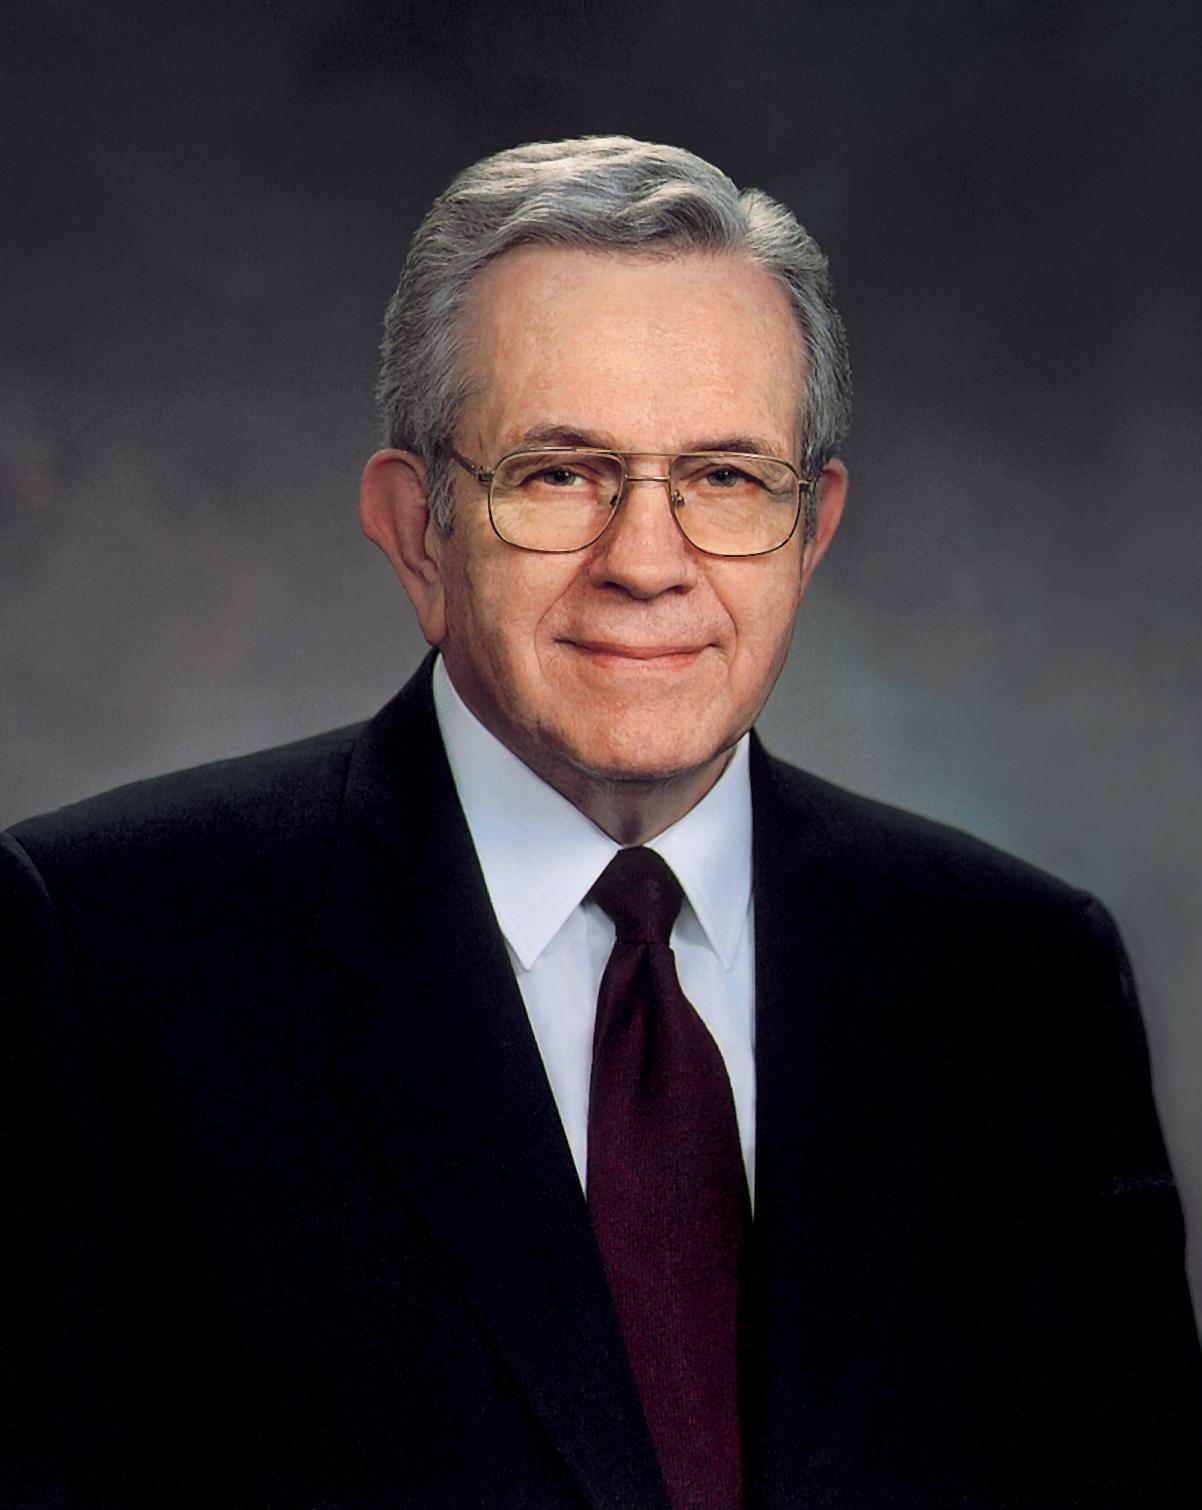 Boyd Packer is the leader of the Quorum of Twelve Apostles for the Church of Jesus Christ of Latter-day Saints. RNS photo courtesy LDS Church.